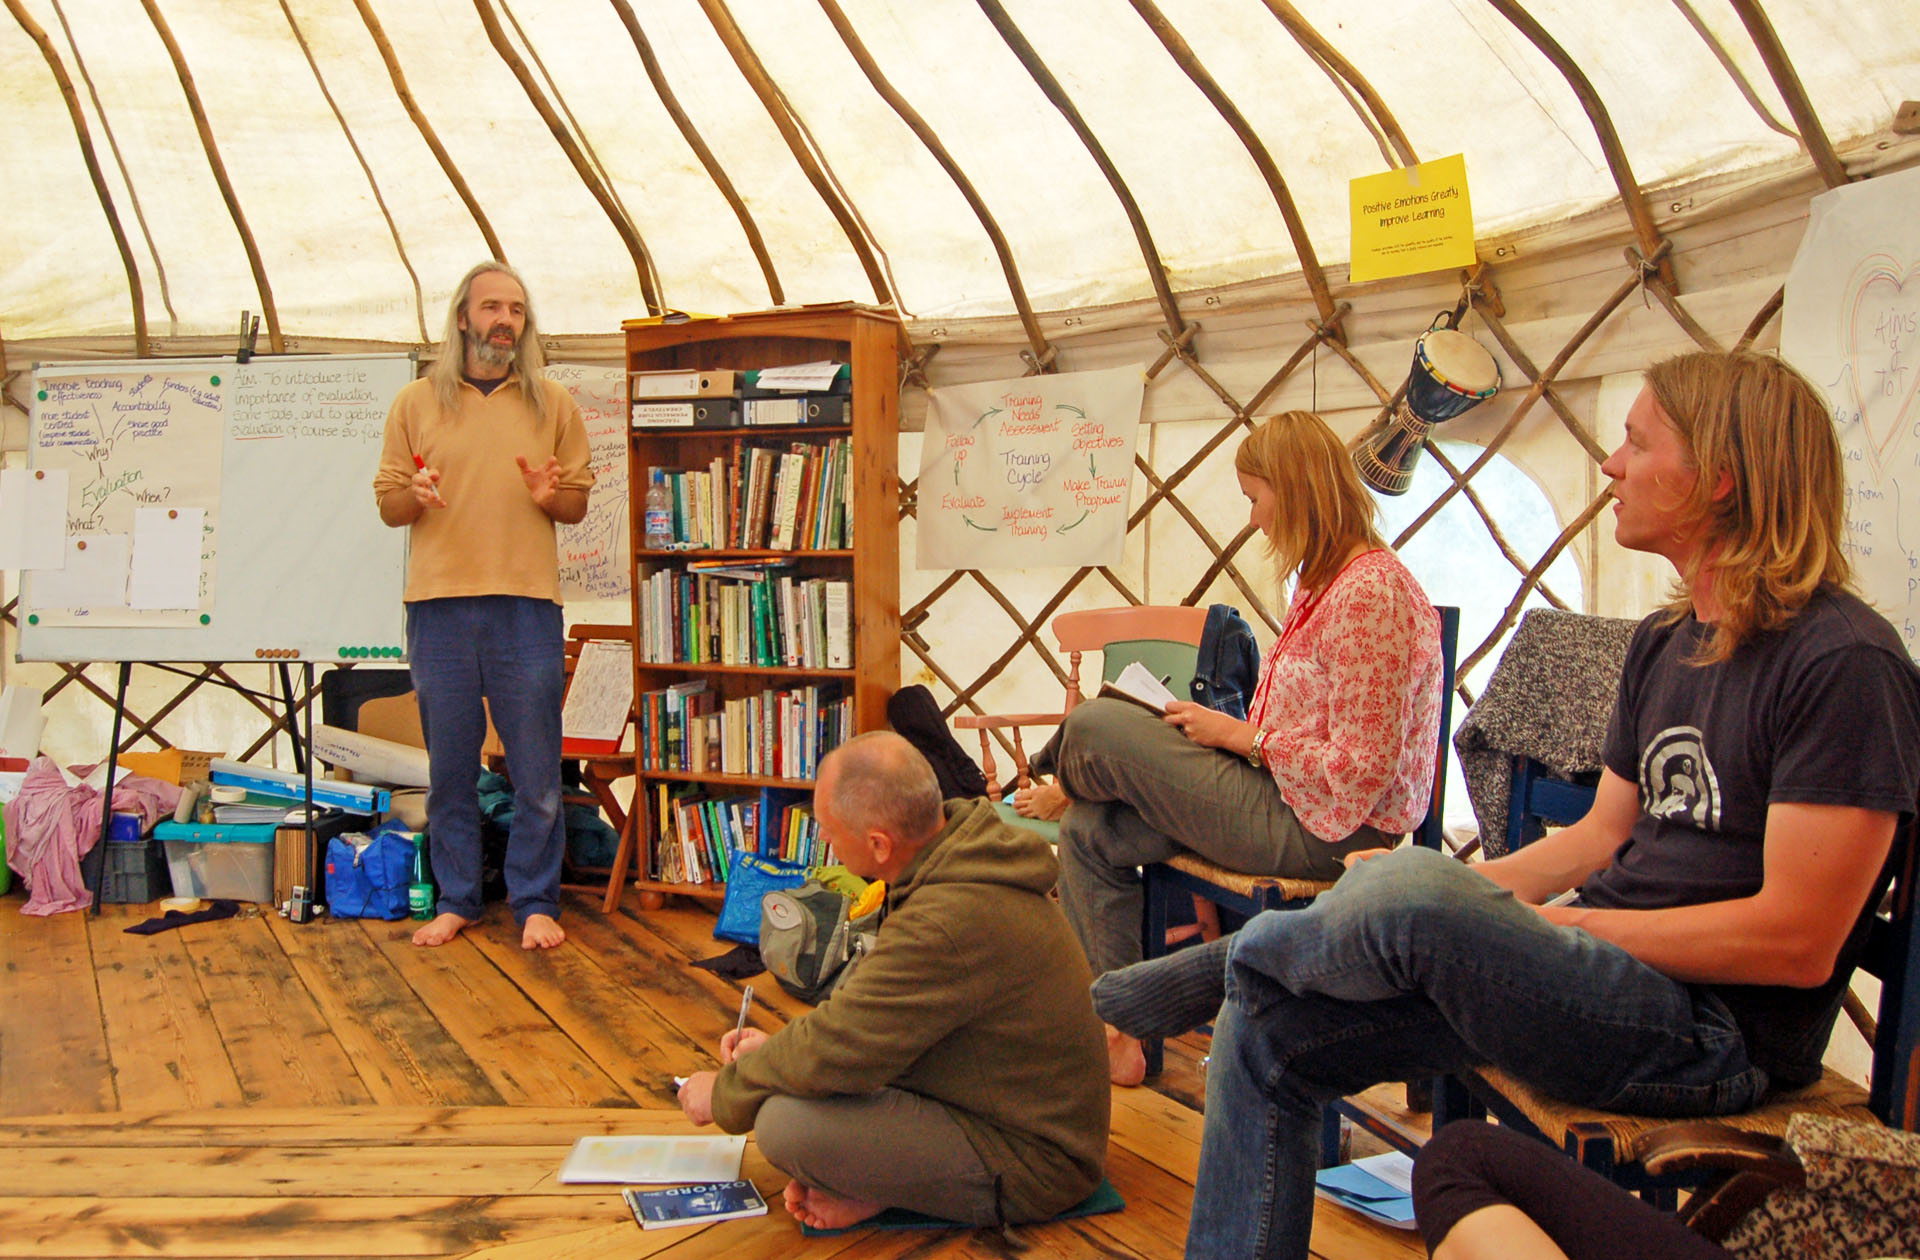 Aranya teaching in yurt